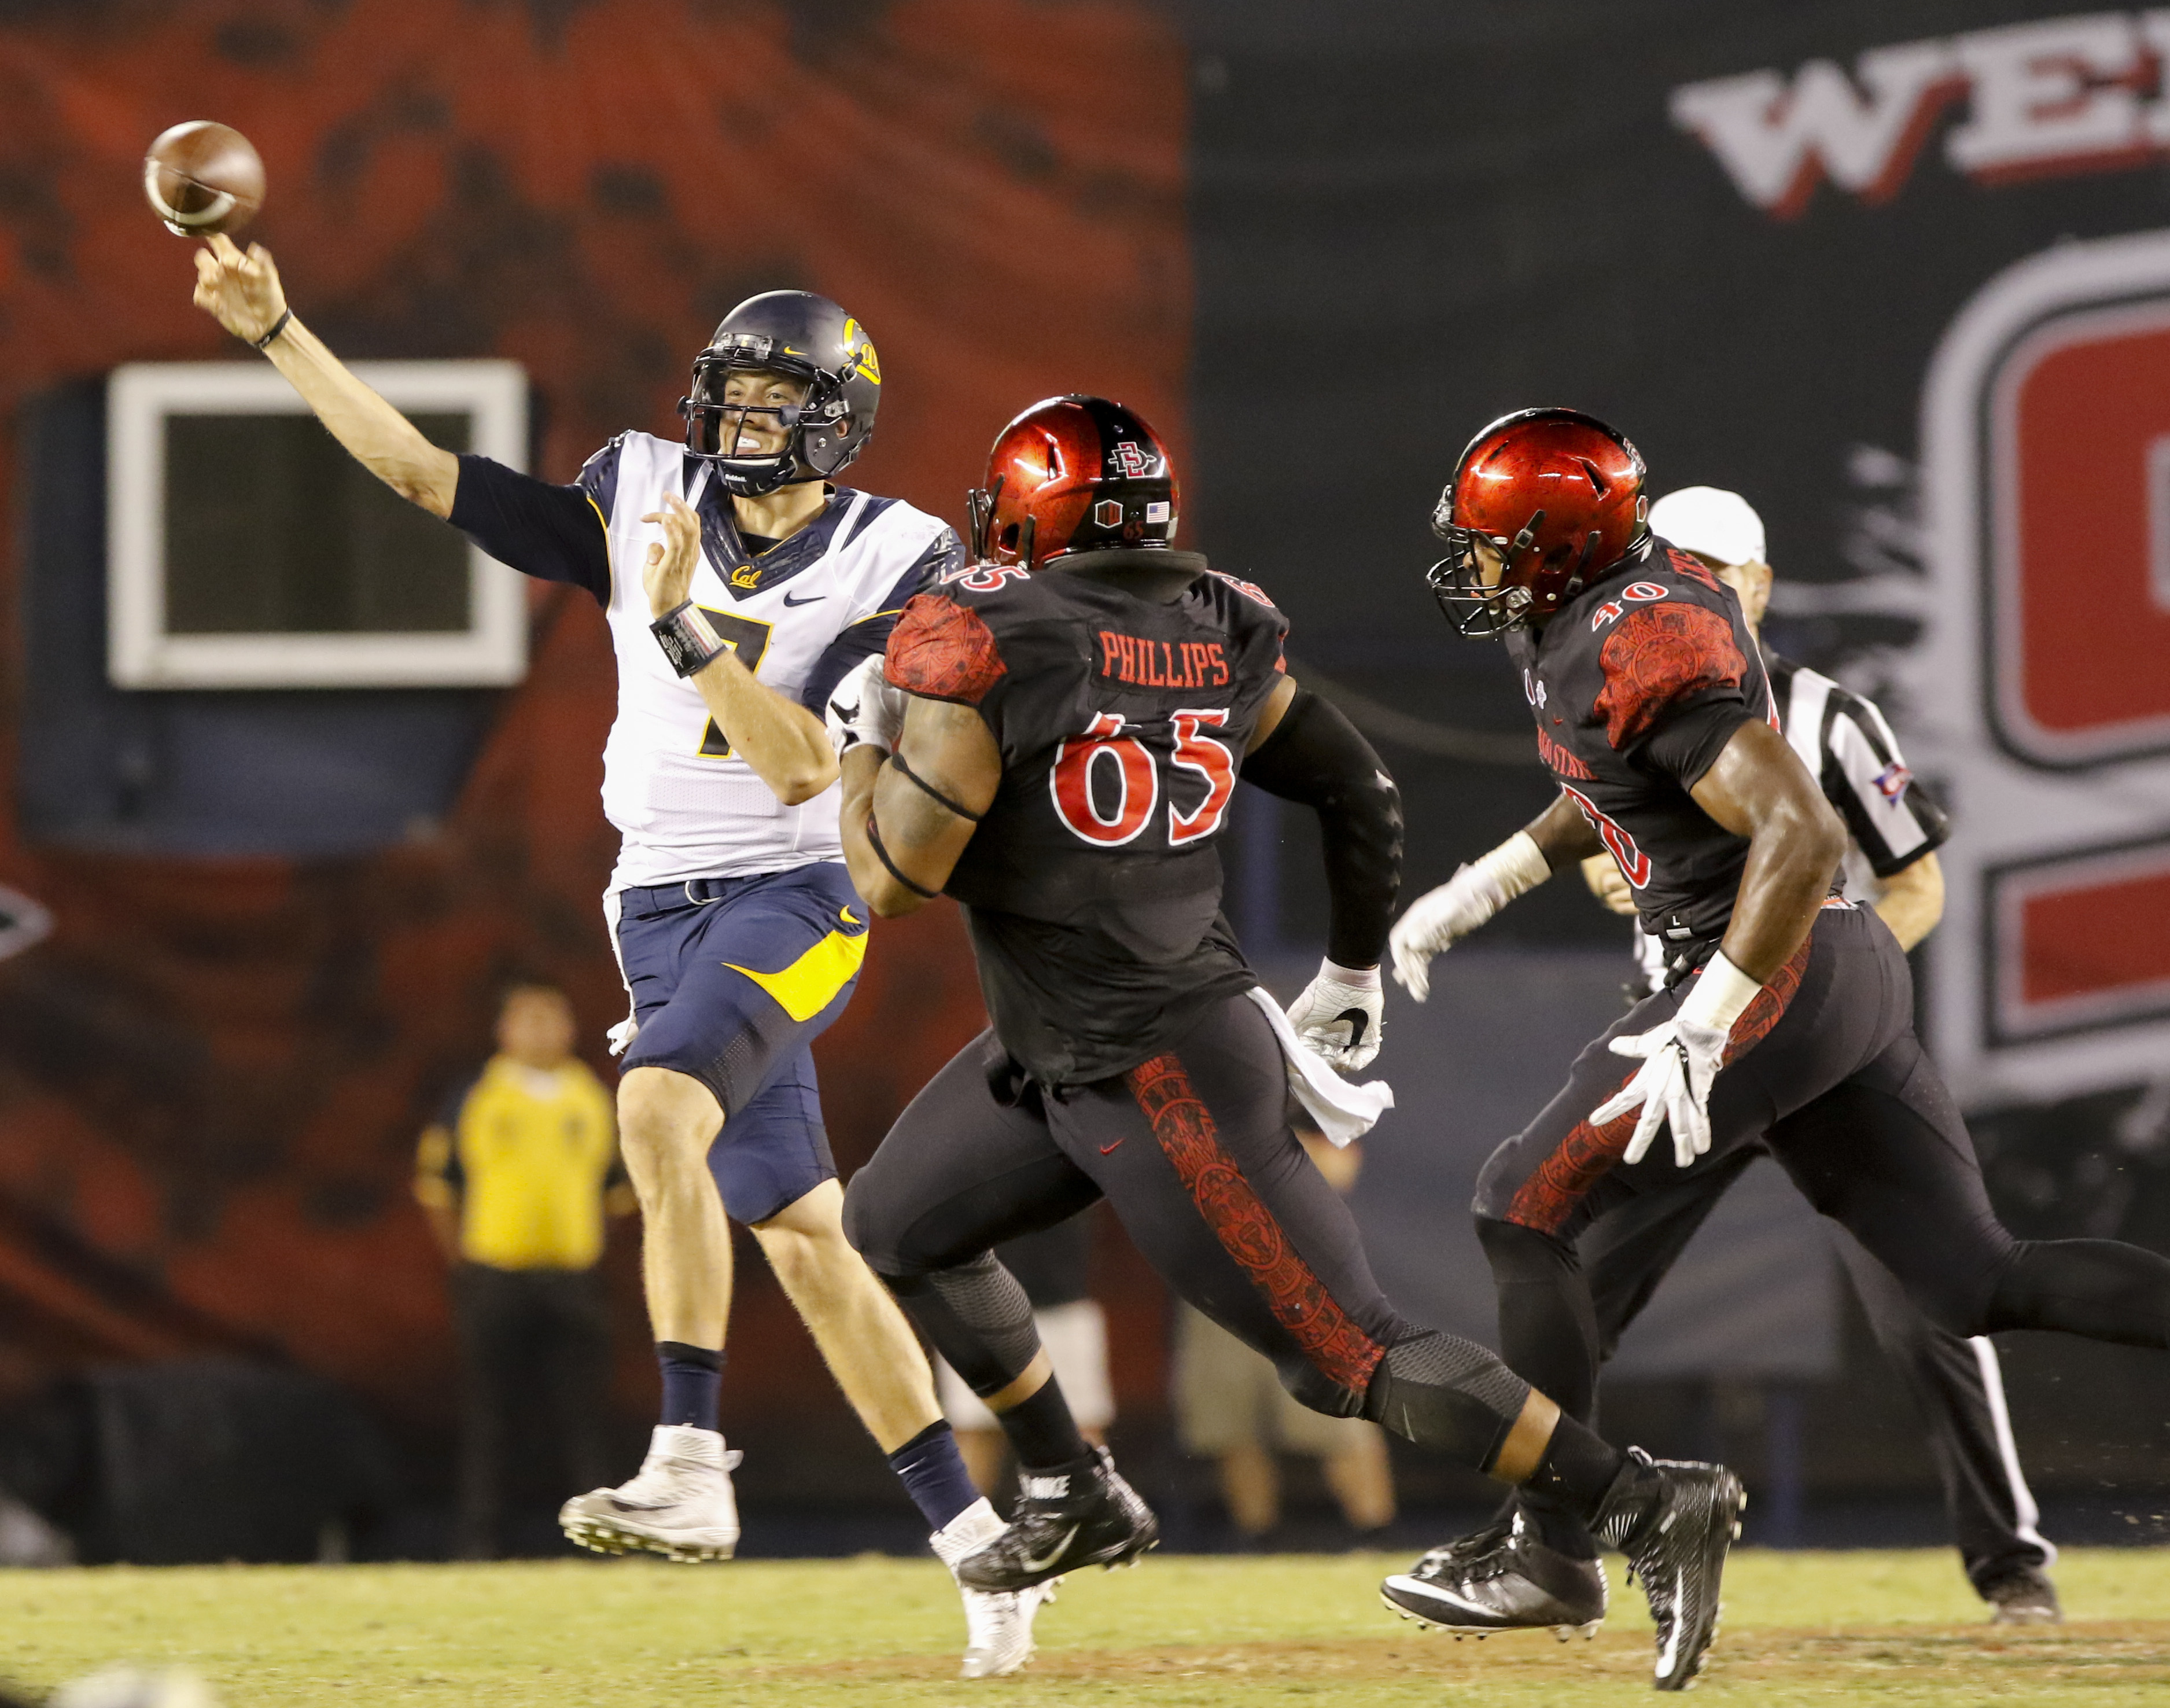 California quarterback Davis Webb throws to wide receiver Chad Hansen despite the pressure from San Diego State's Sergio Phillips, center, and Randy Ricks during the first half of an NCAA college football game Saturday, Sept. 10, 2016, in San Diego. (AP P